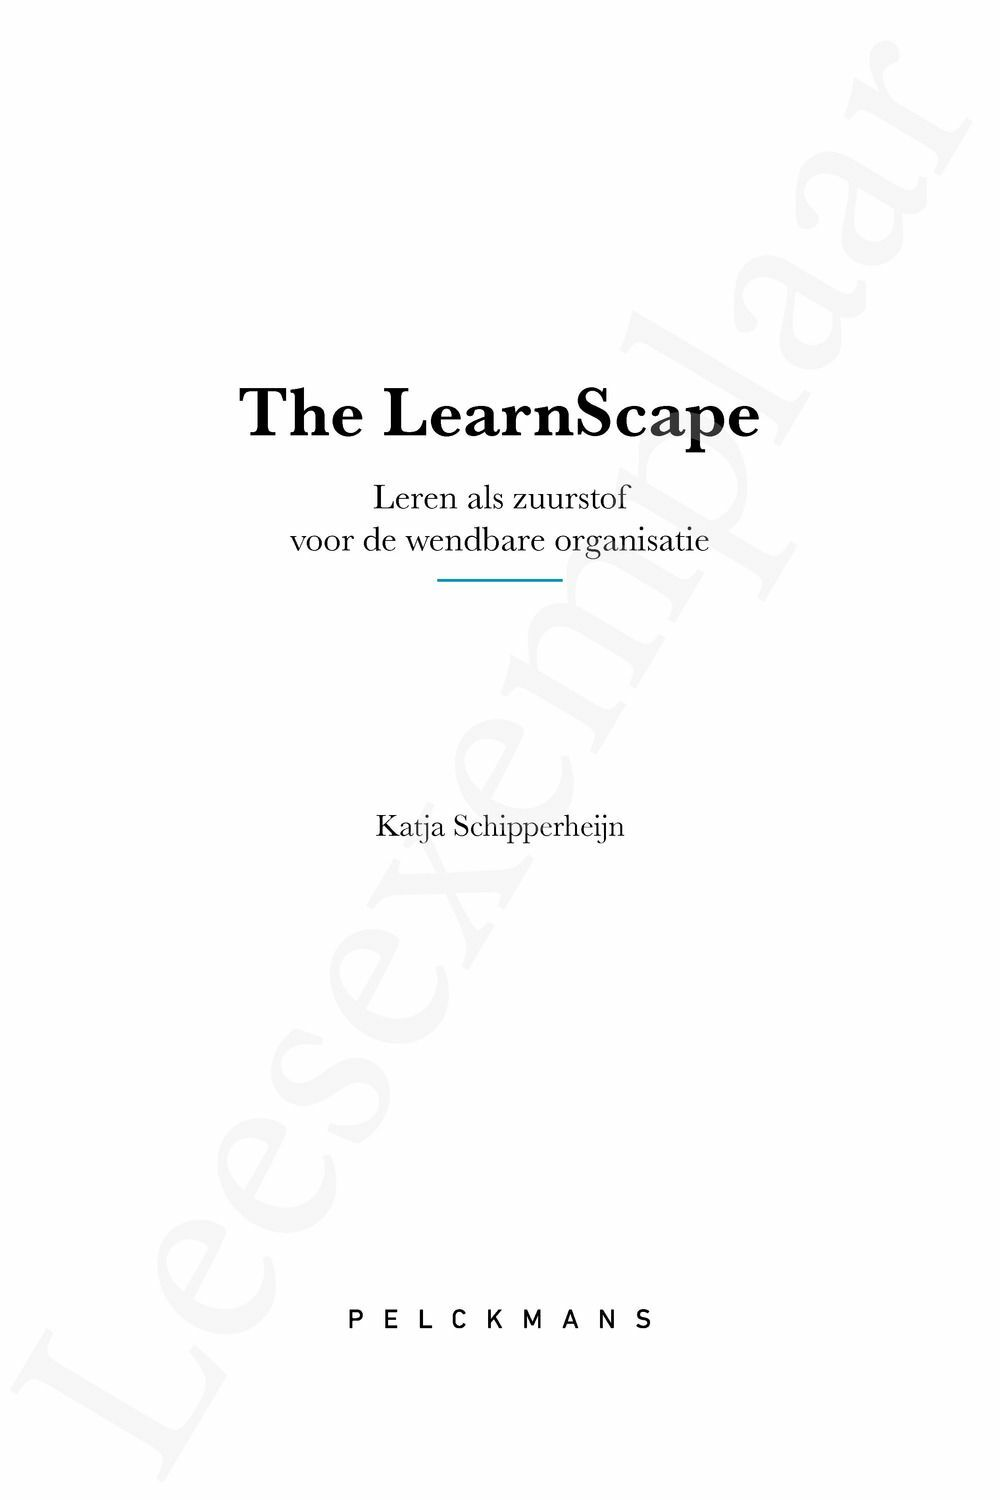 Preview: The LearnScape